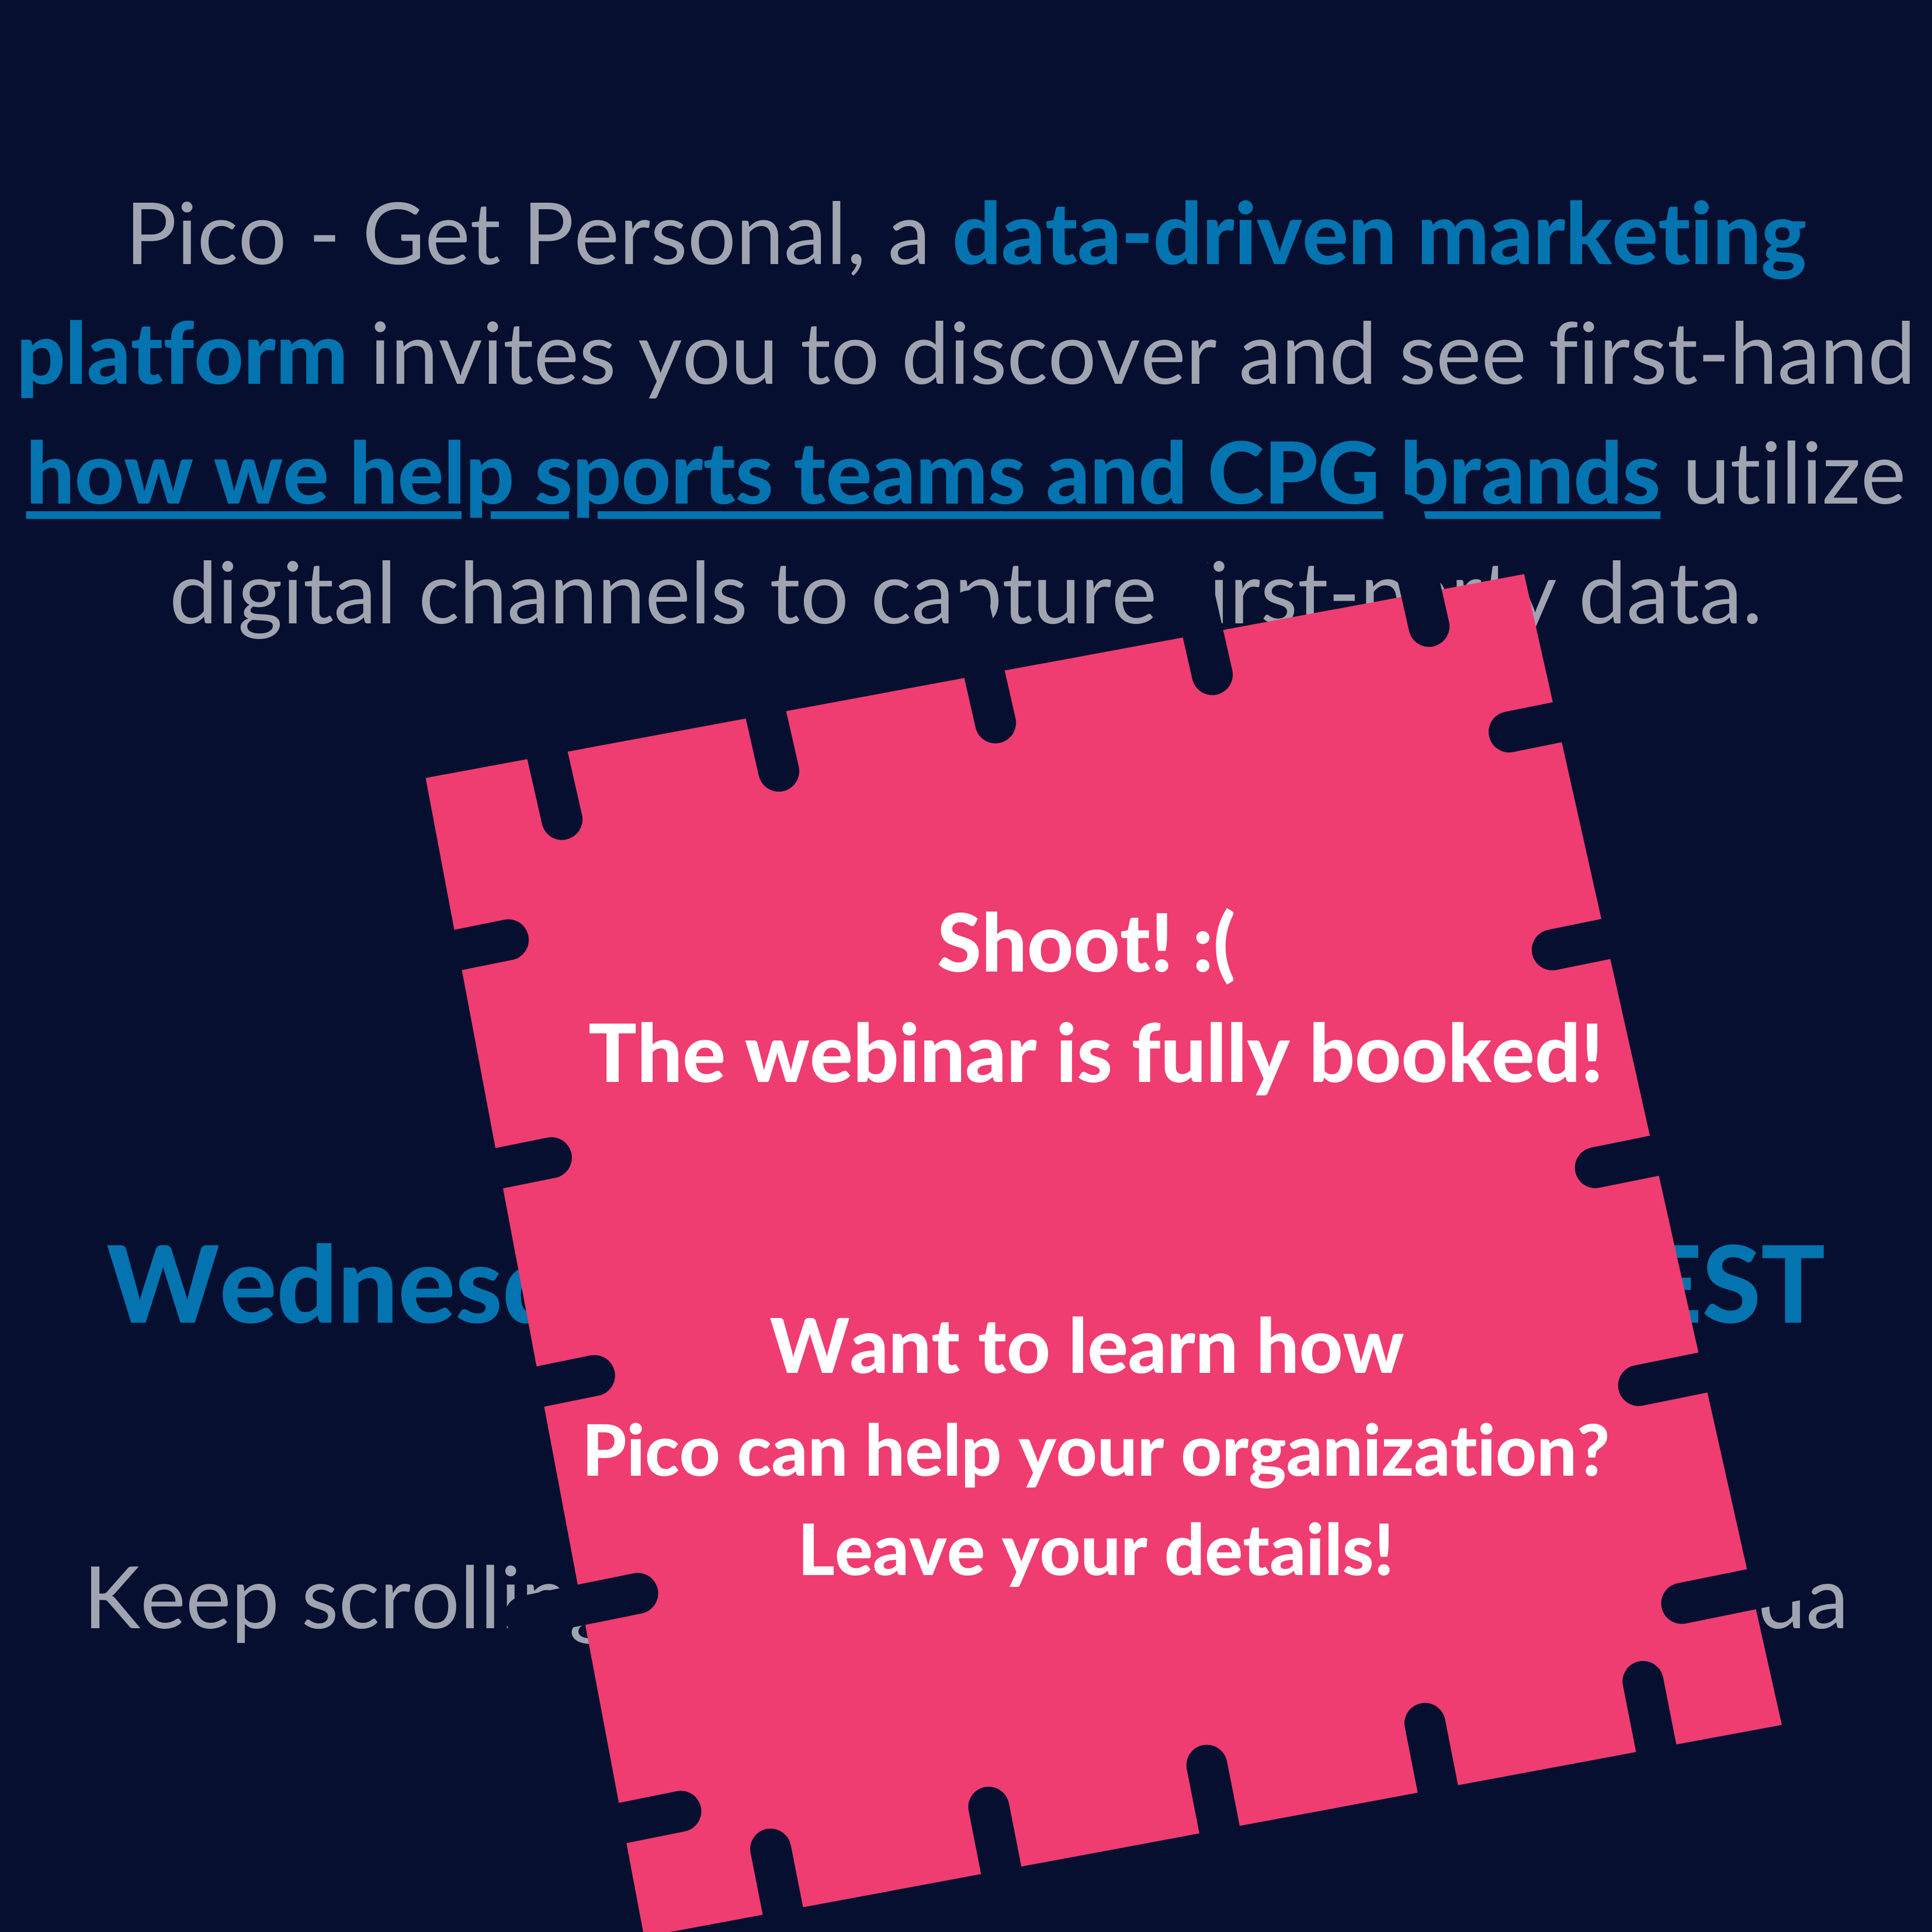 Pico - Get Personal, a data-driven marketing platform invites you to discover and see first-hand how we help sports teams and CPG brands utilize digital channels to capture first-party data. Join our Webinar on (5)